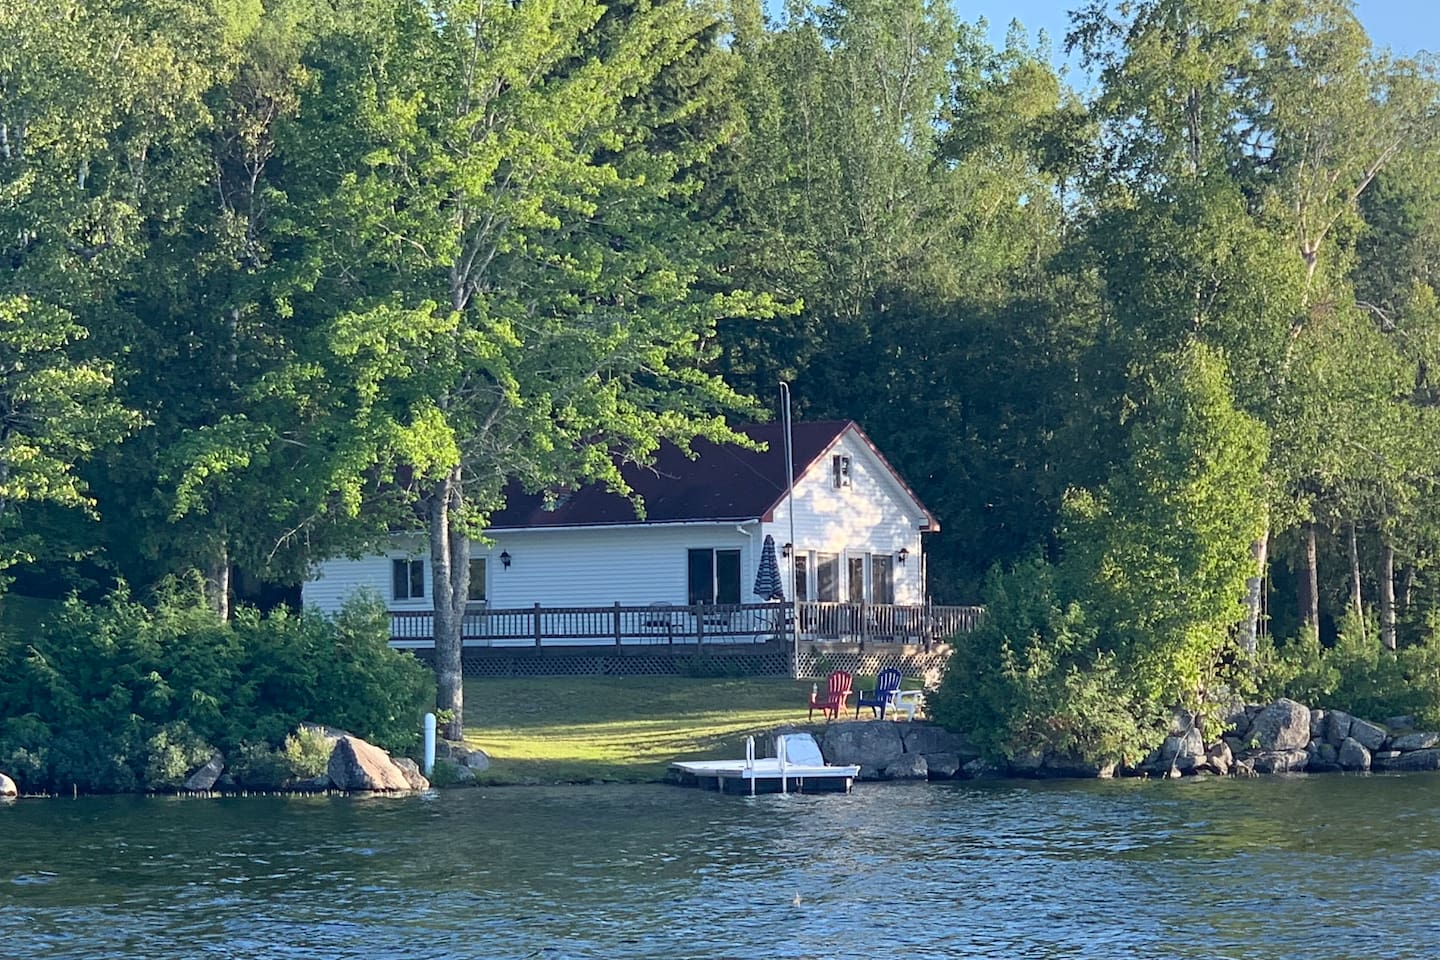 Waterfront cottage (1br/1ba) with detached seasonal bunkhouse (2 sleeping rooms/ no bathroom), walk-in waterfront, dock, yard, deck, and panoramic views from the cottage's location on a small point of a crystal clear Maine lake.